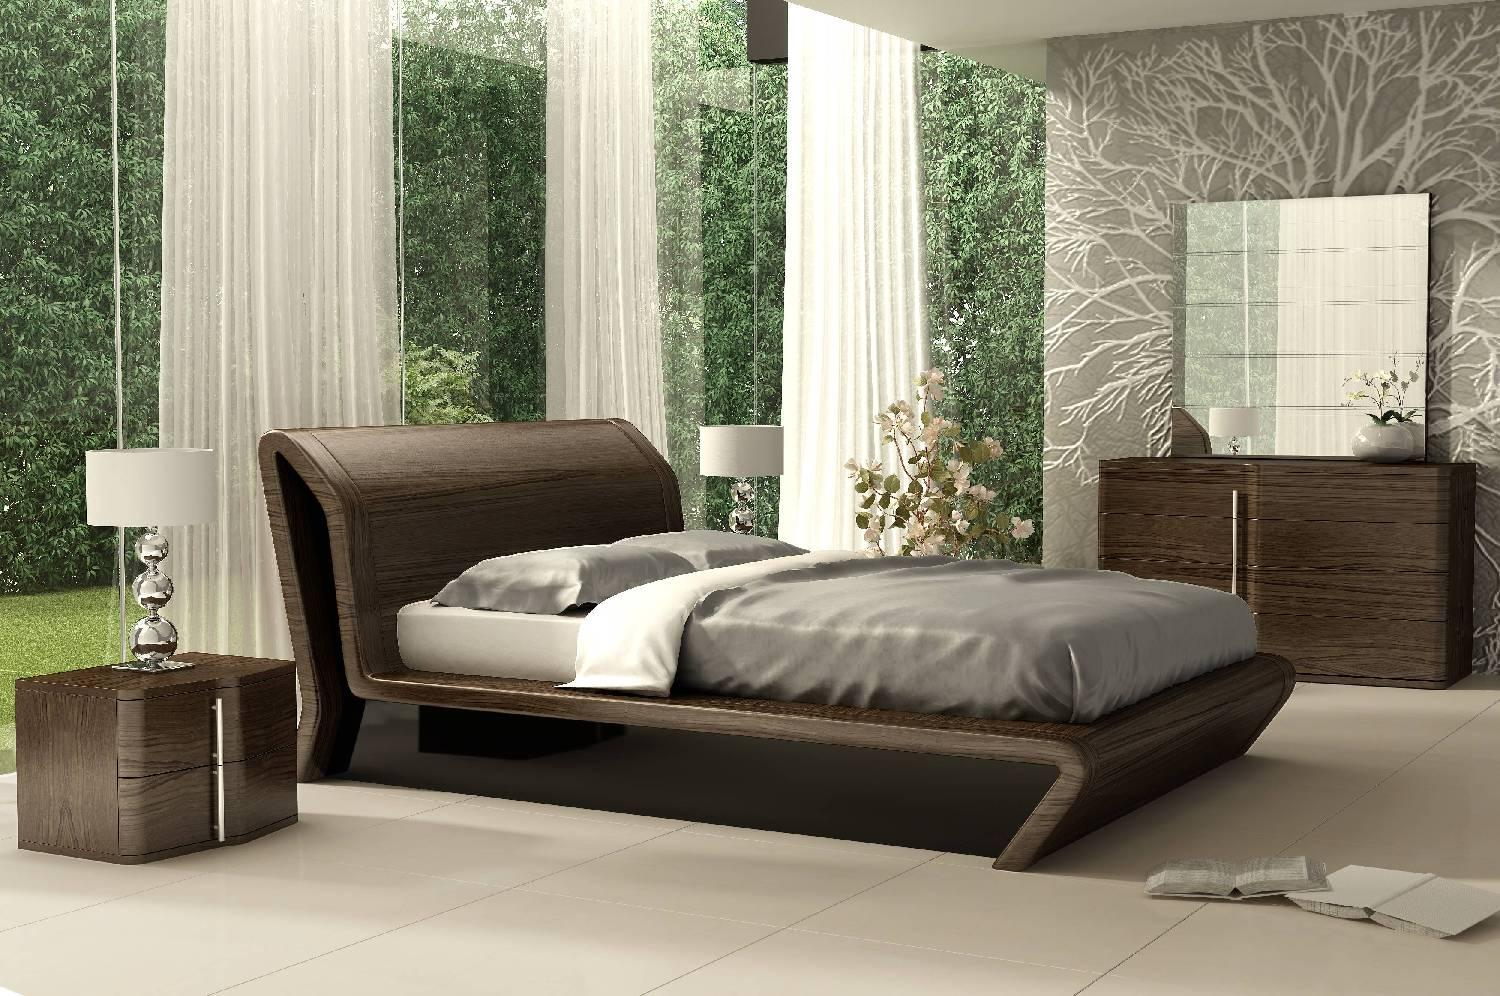 ensemble pour chambre coucher design 1 0 500 0 pi ces. Black Bedroom Furniture Sets. Home Design Ideas